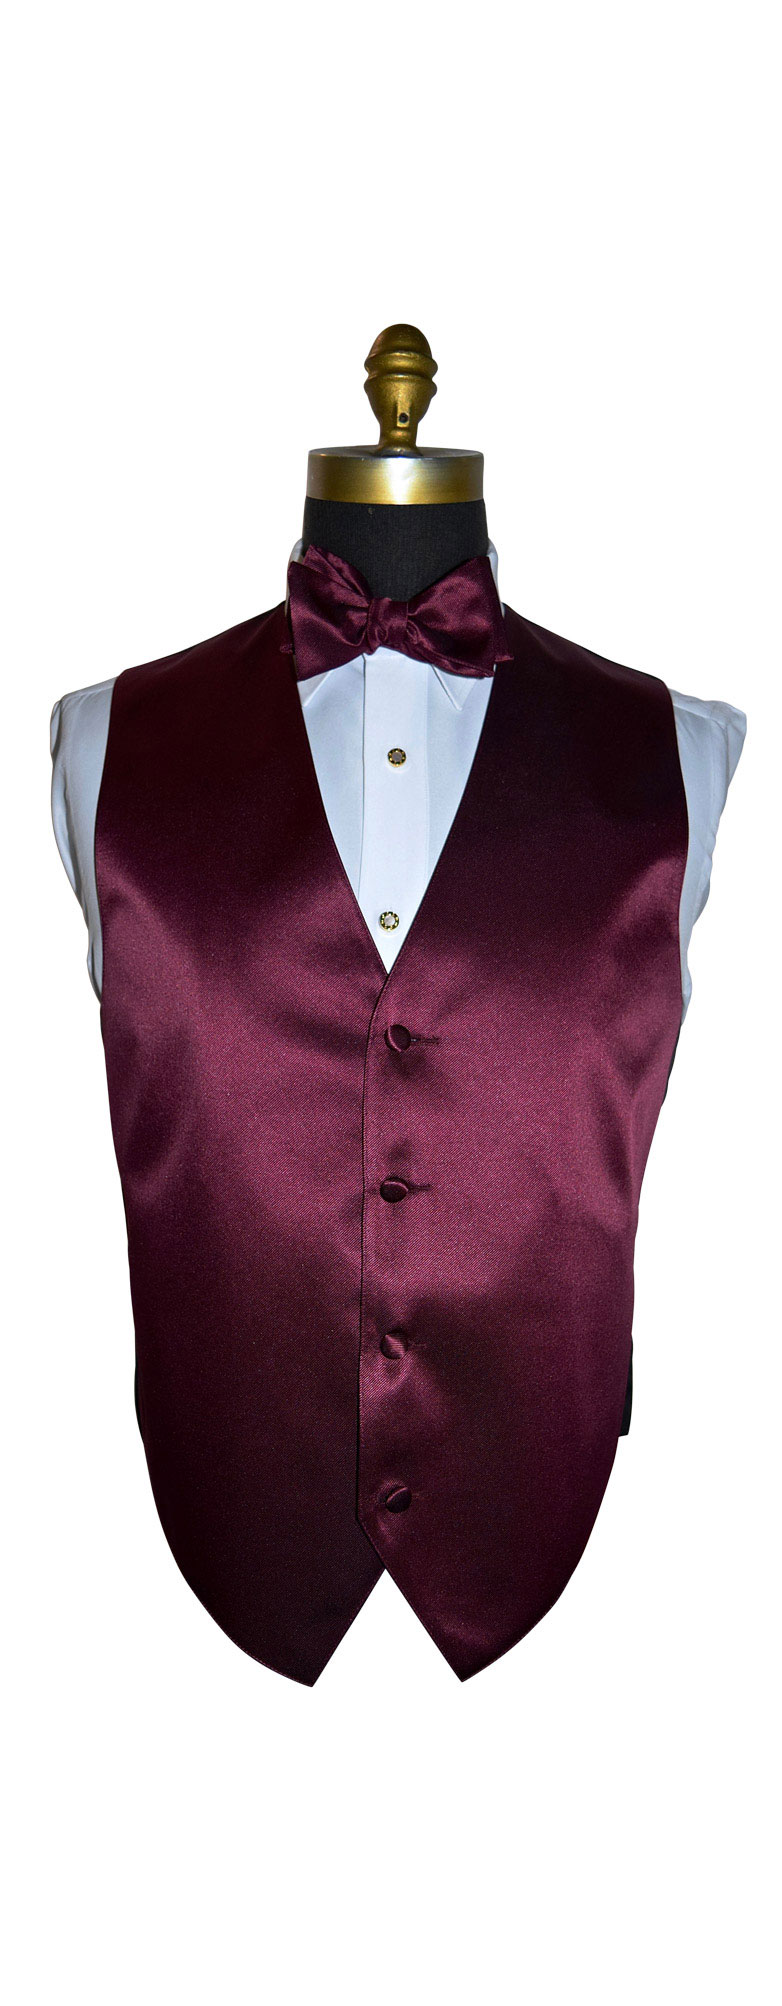 TOP OF THE LINE TRUE COLOR - MATCHES 'WINE' BRIDAL